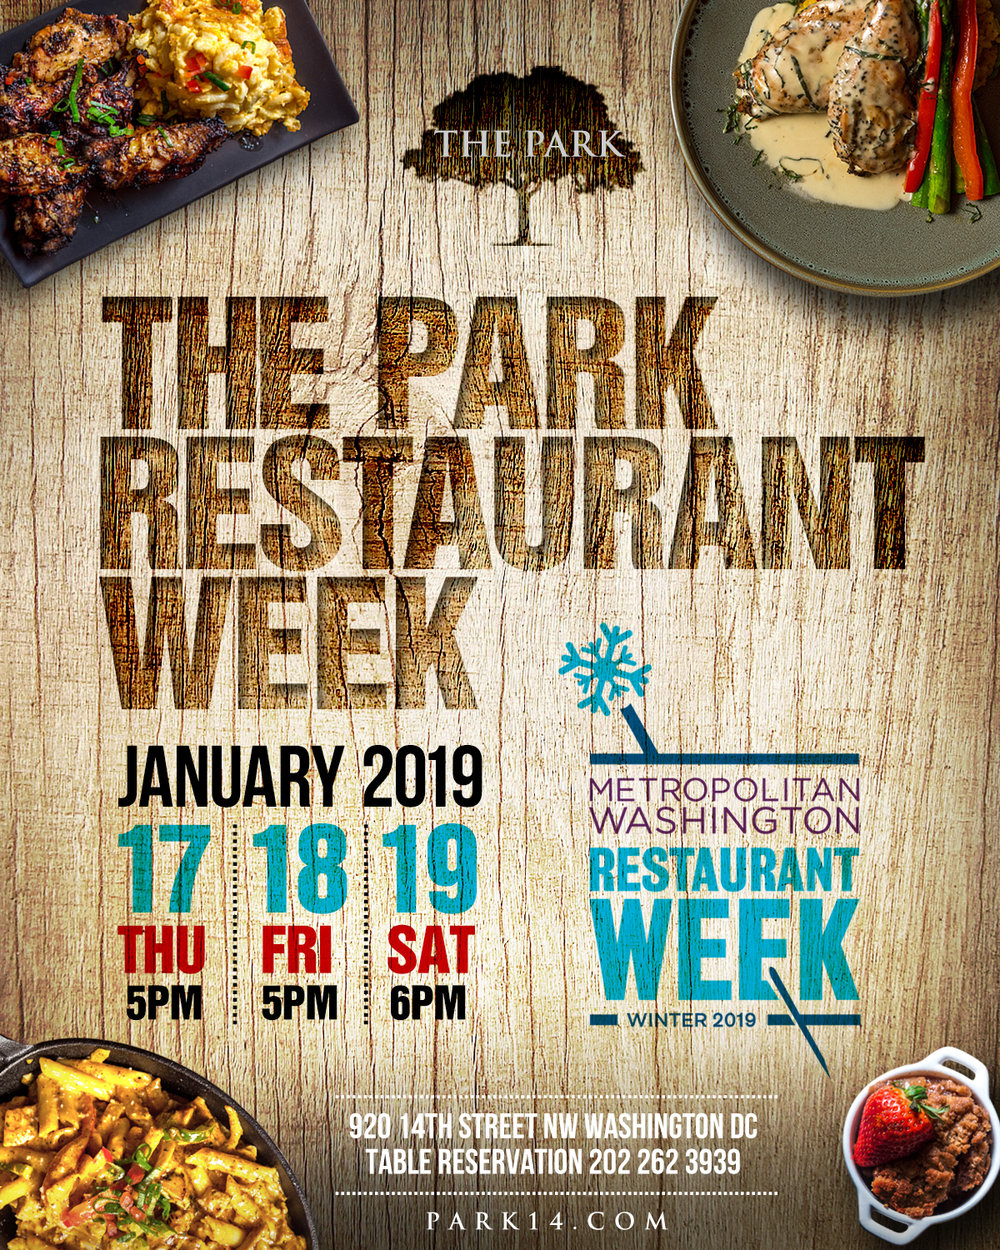 Park Restaurant Week Winter 2019 v2.jpg